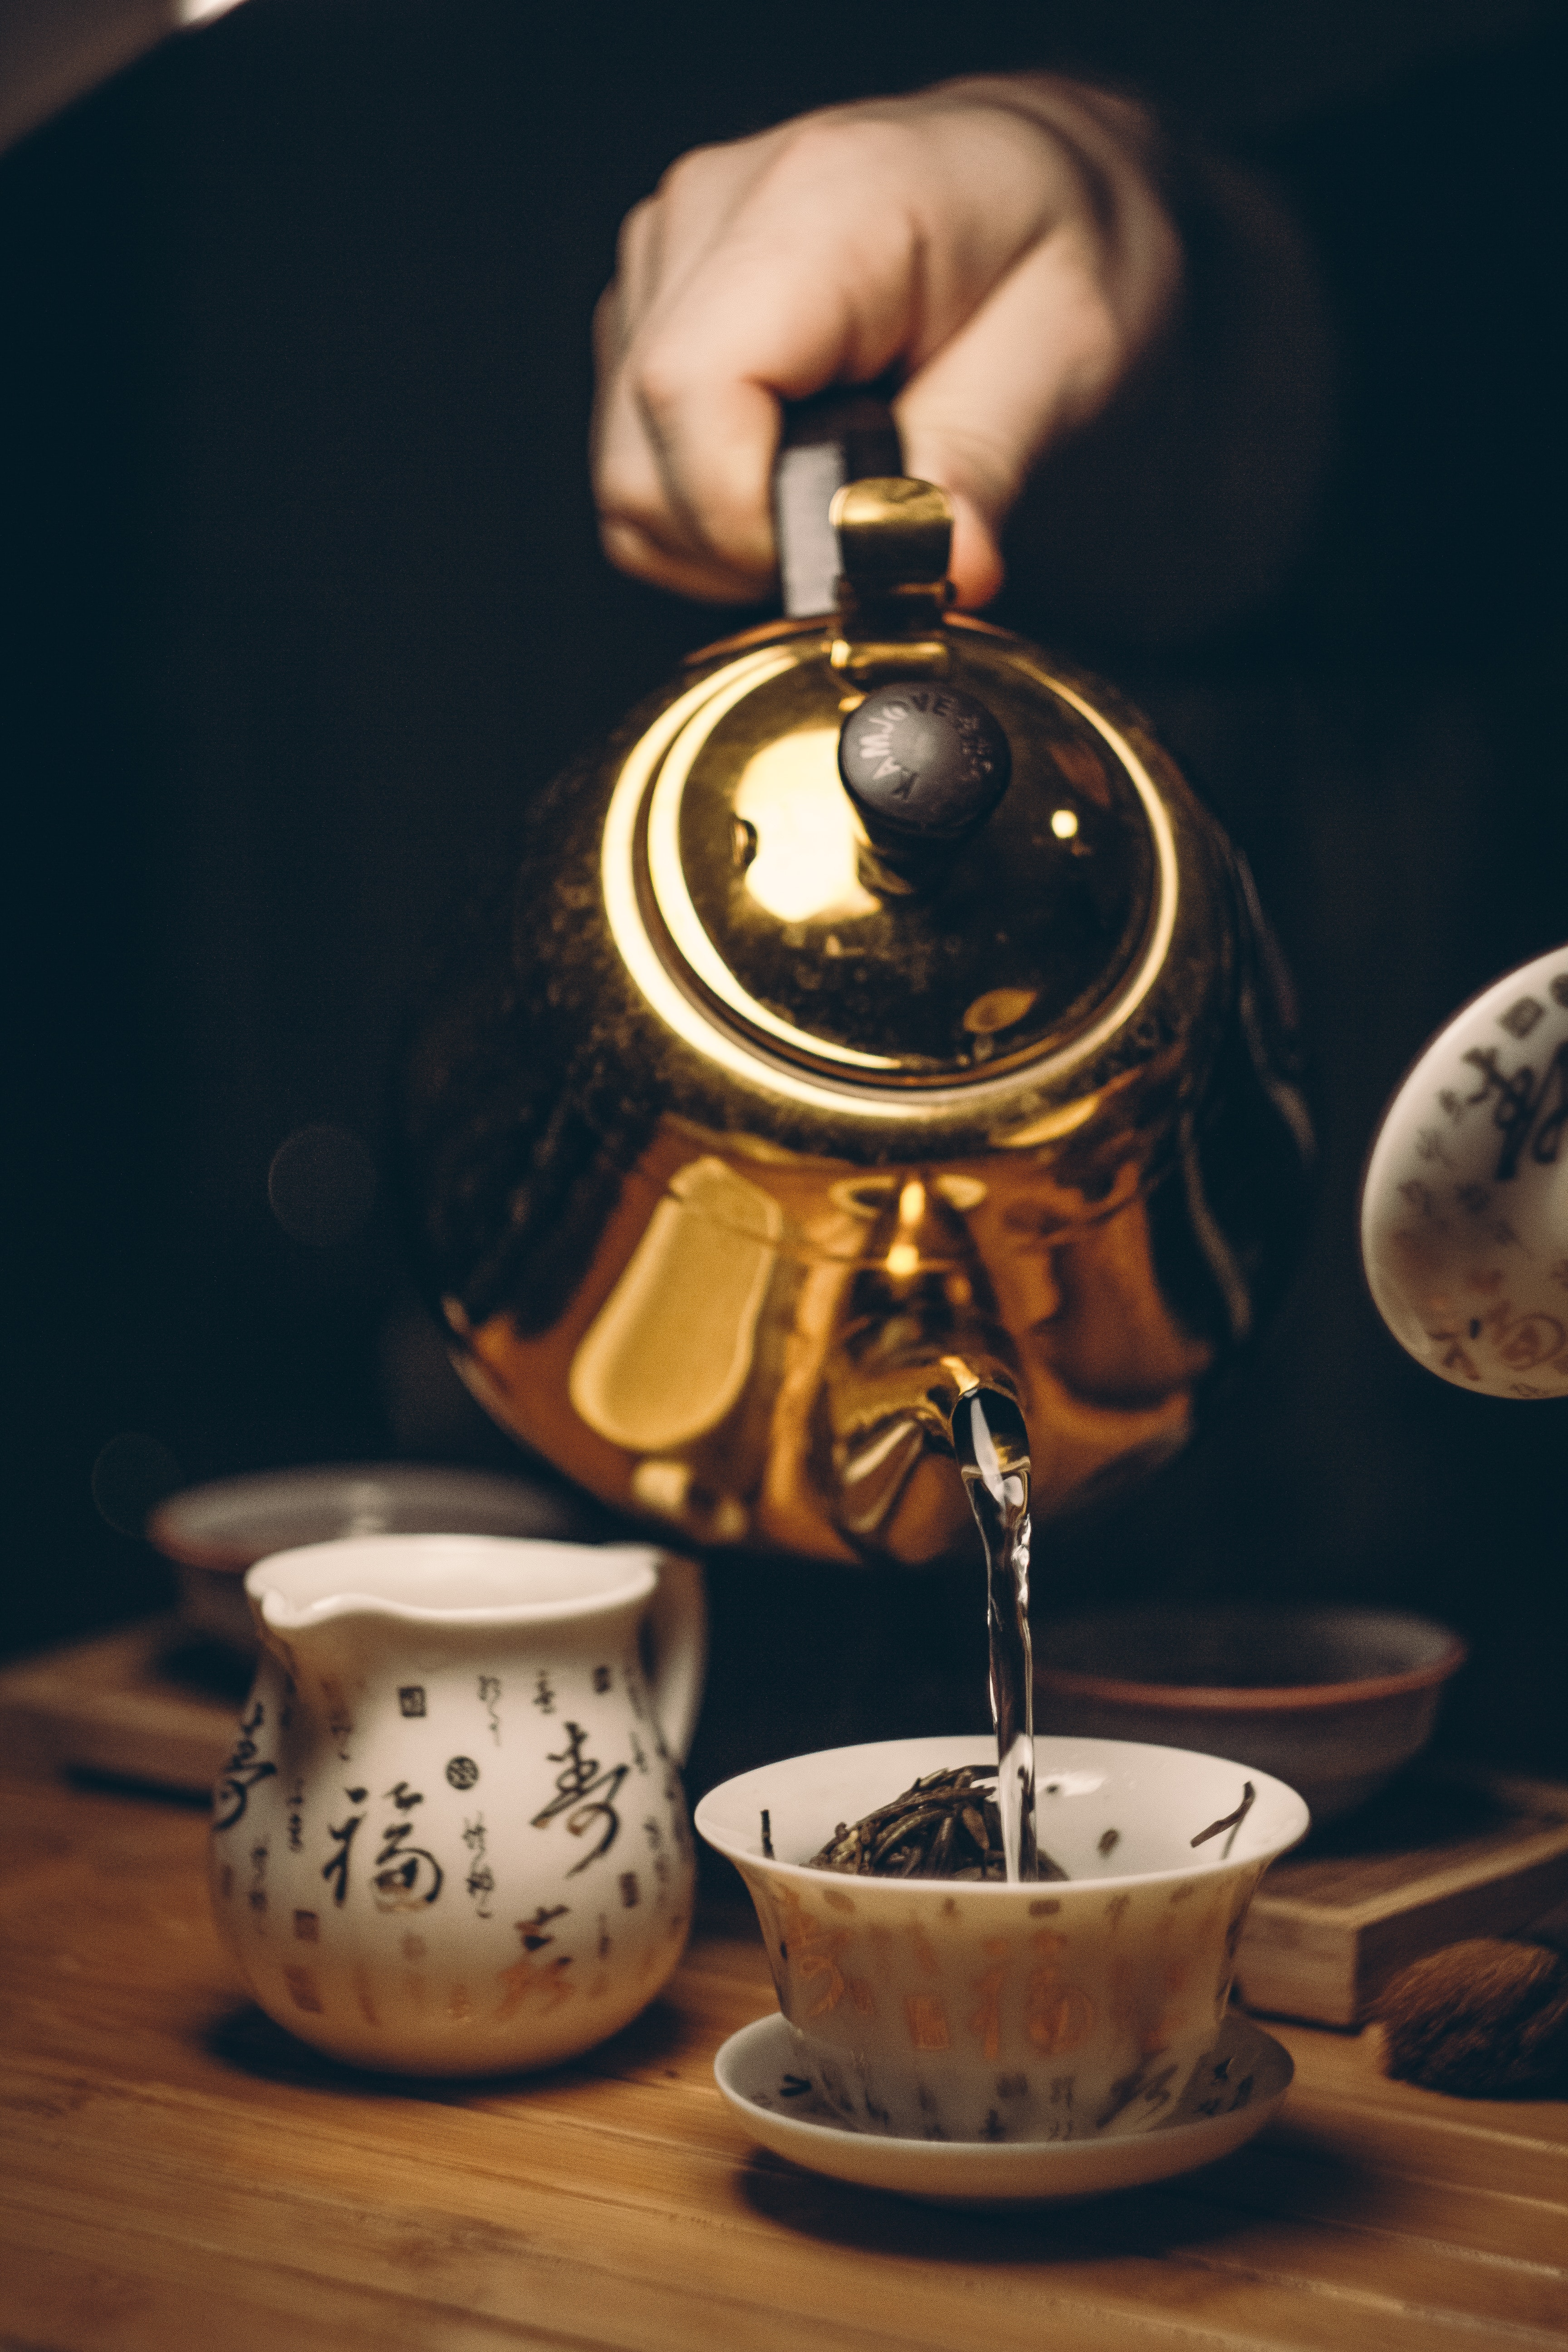 Person Holding Gold Teapot Pouring White Ceramic Teacup, Beverage, Pot, Vintage, Traditional, HQ Photo